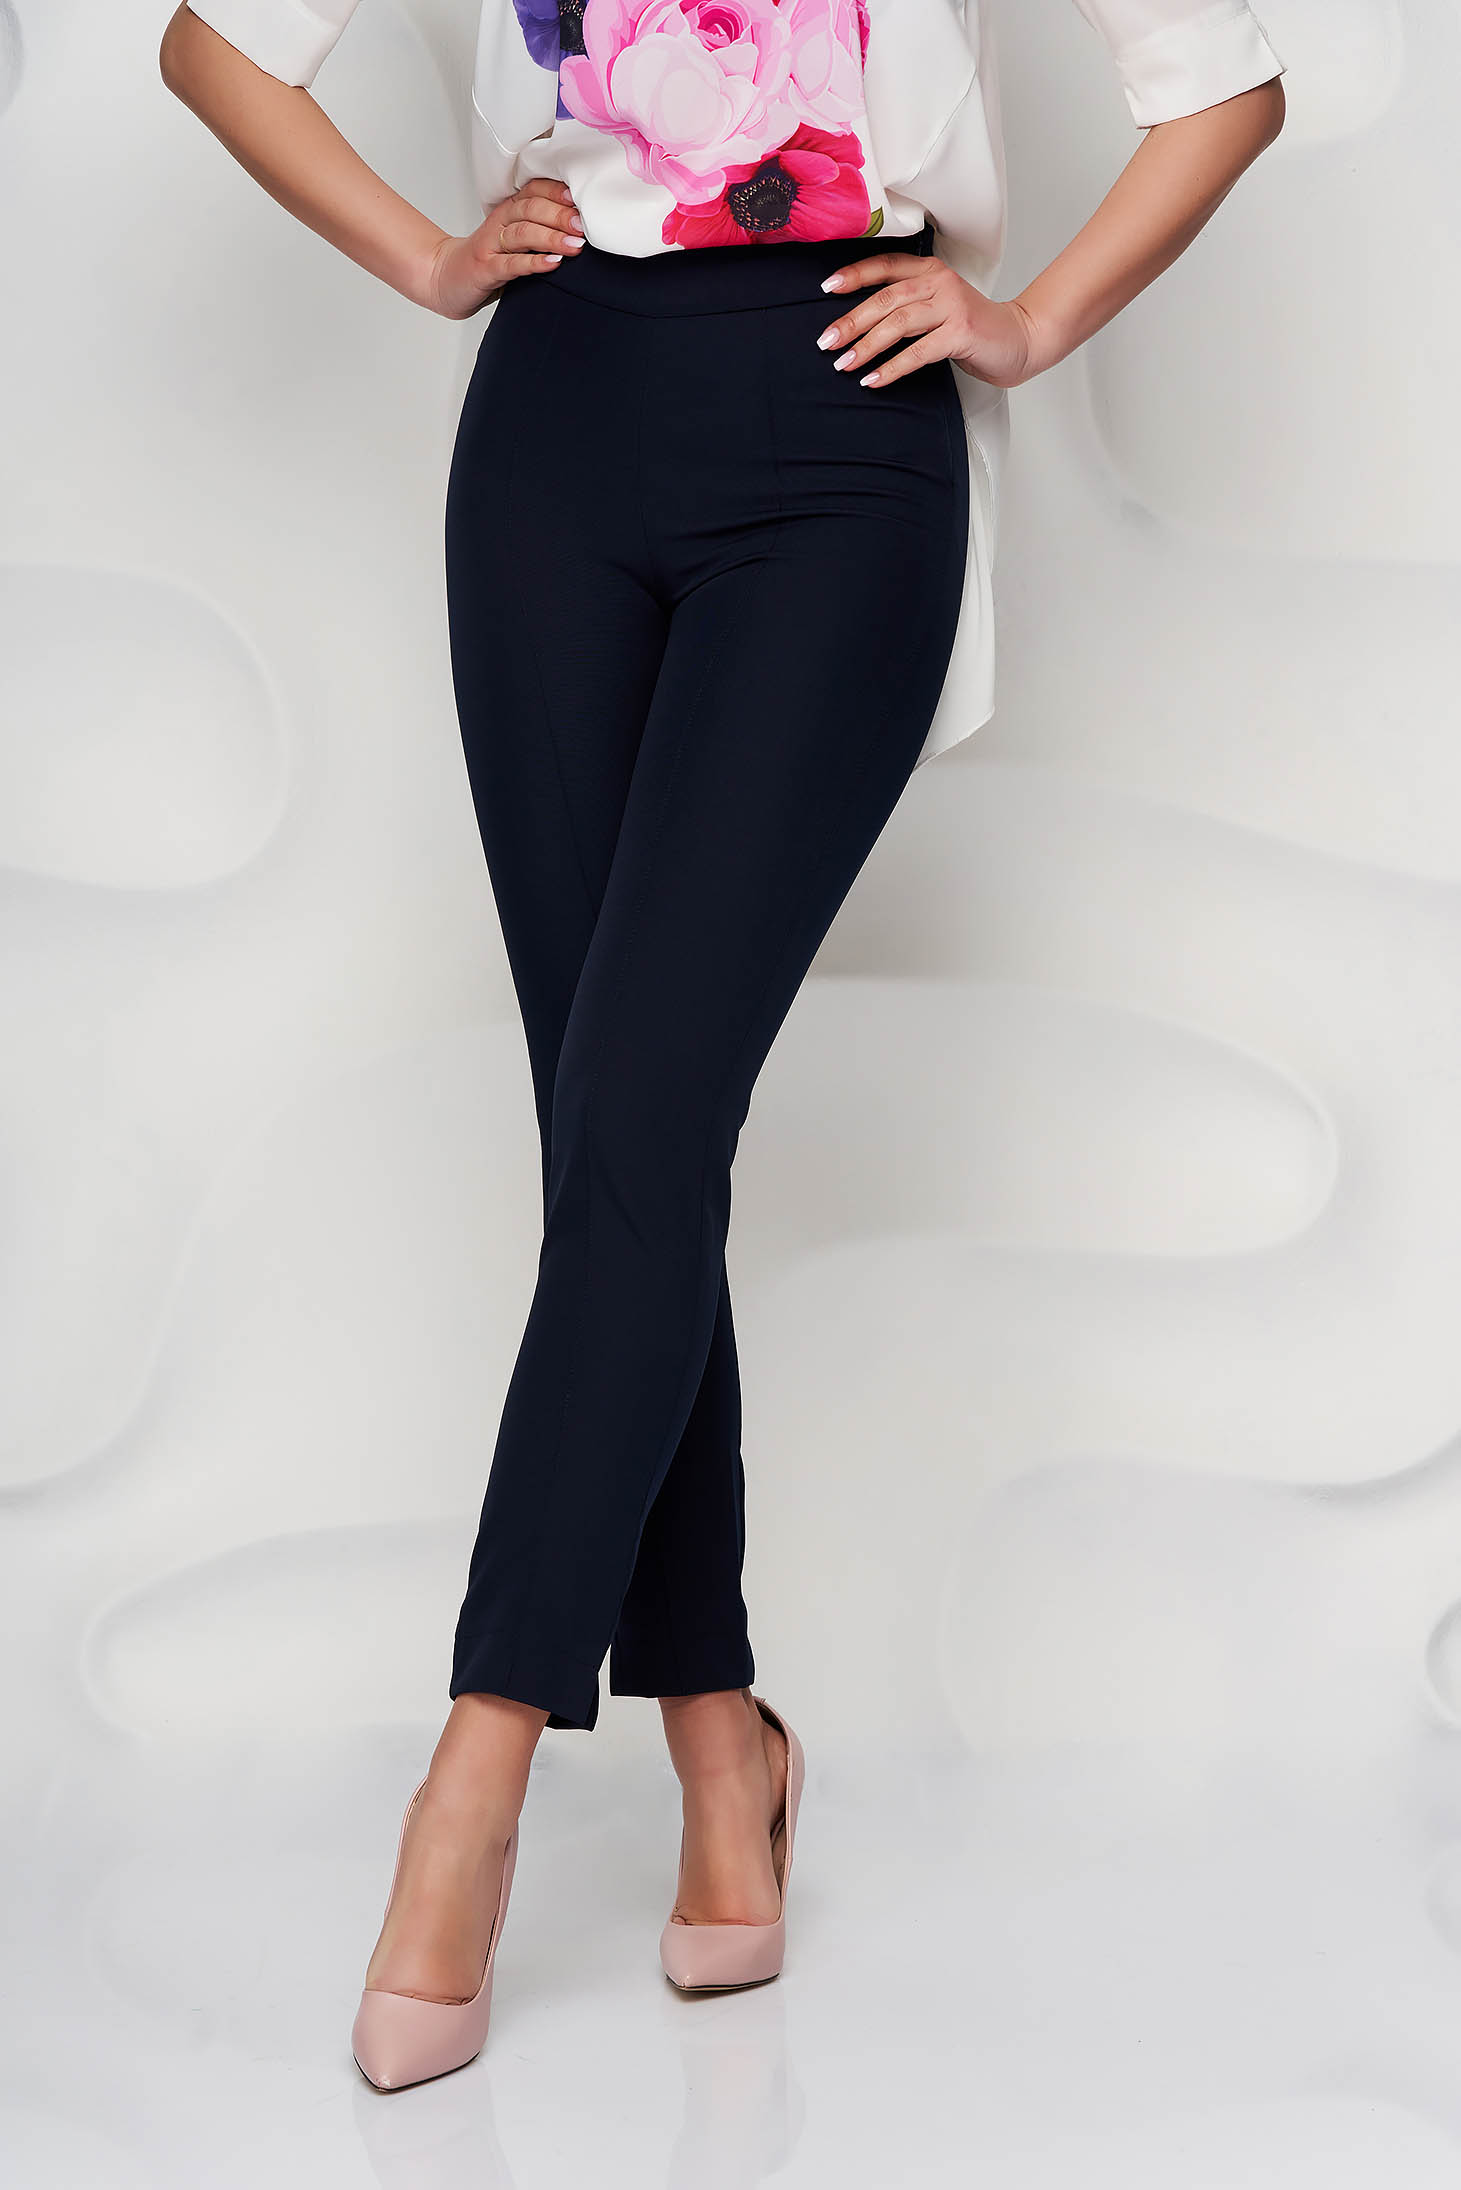 StarShinerS darkblue trousers office high waisted slightly elastic fabric with pockets conical